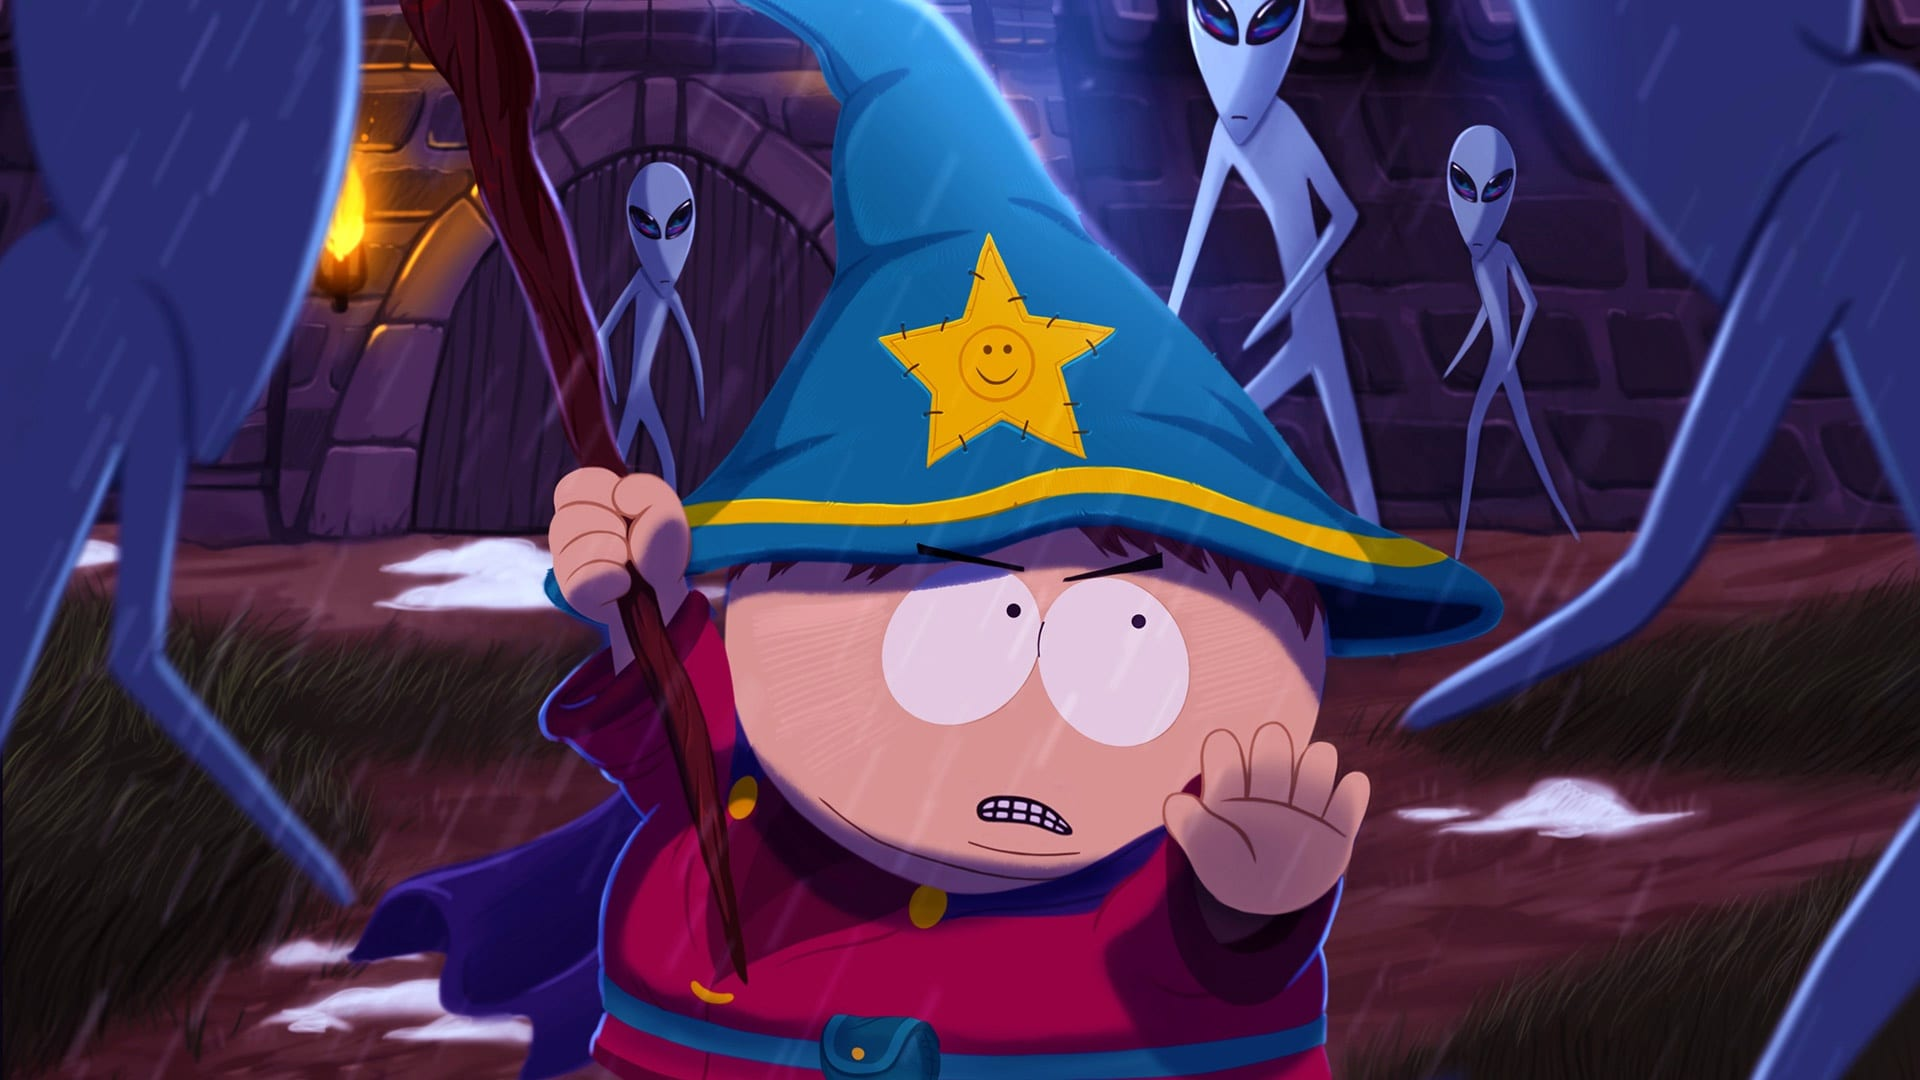 cartman_south_park__the_stick_of_truth_2014-1920x1080